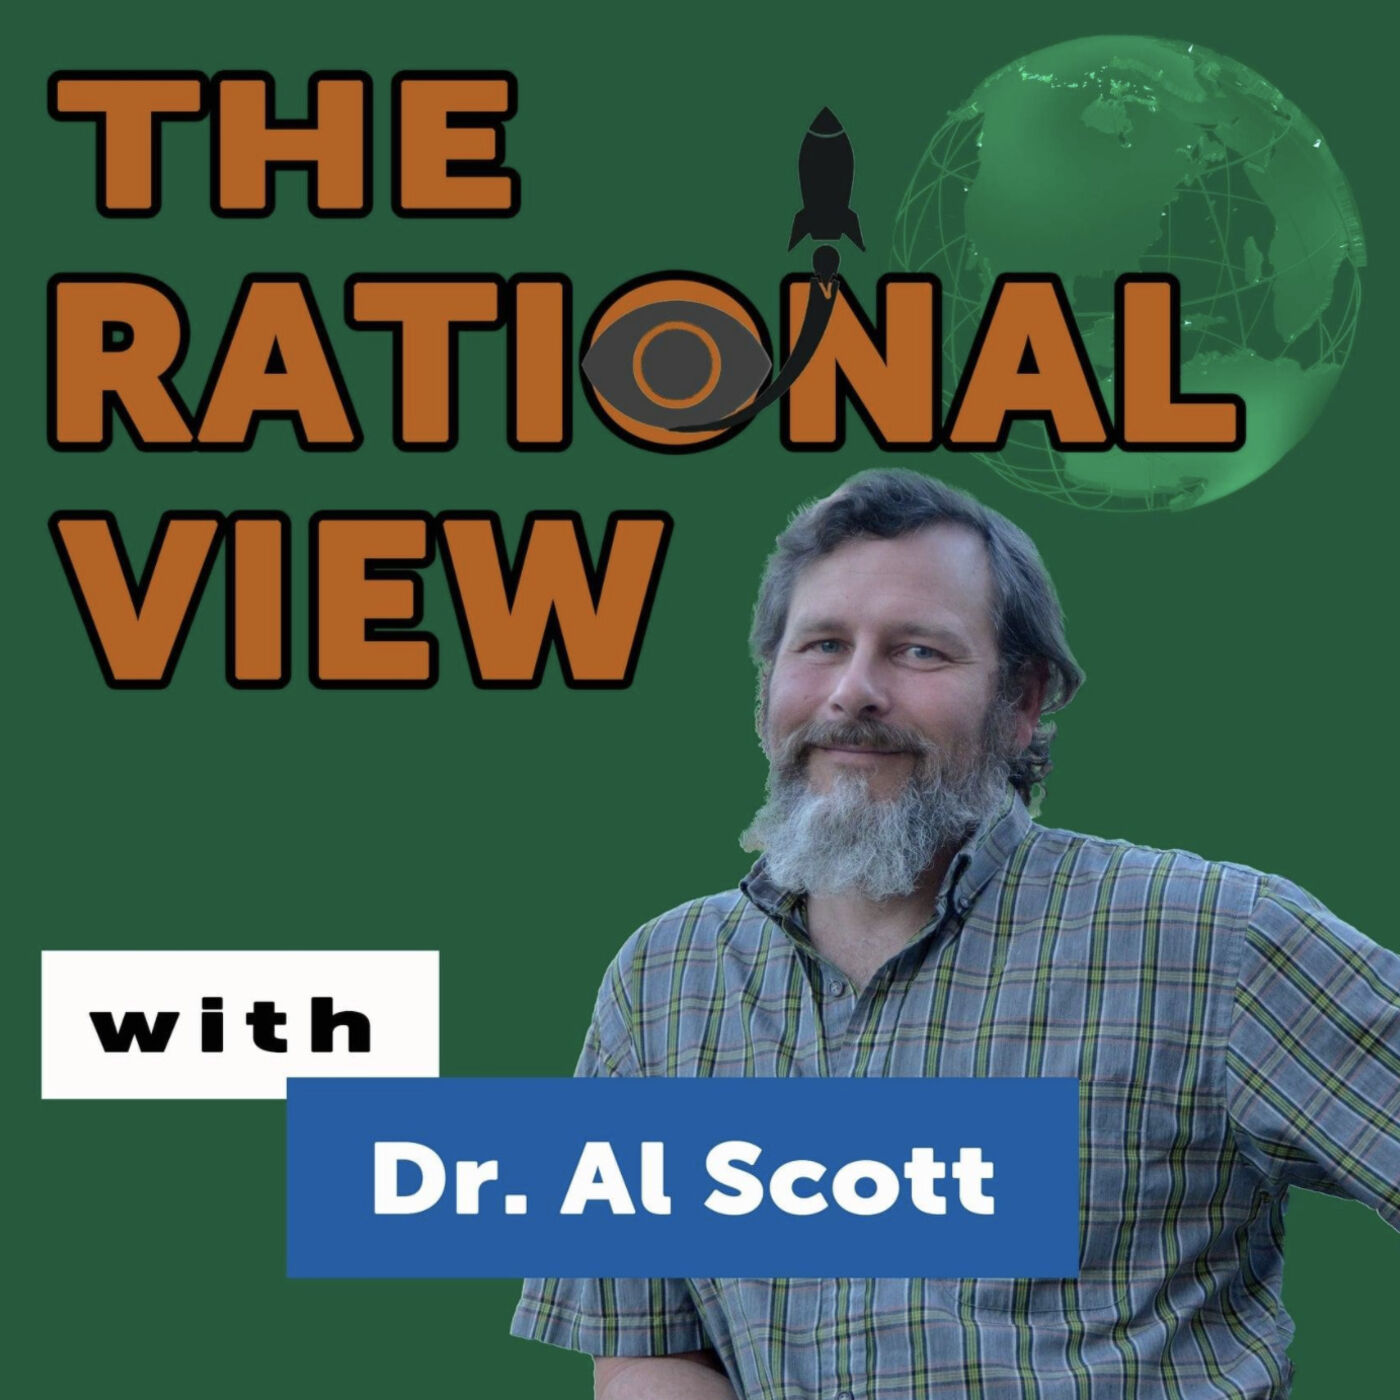 The Rational View With Dr. Al Scott